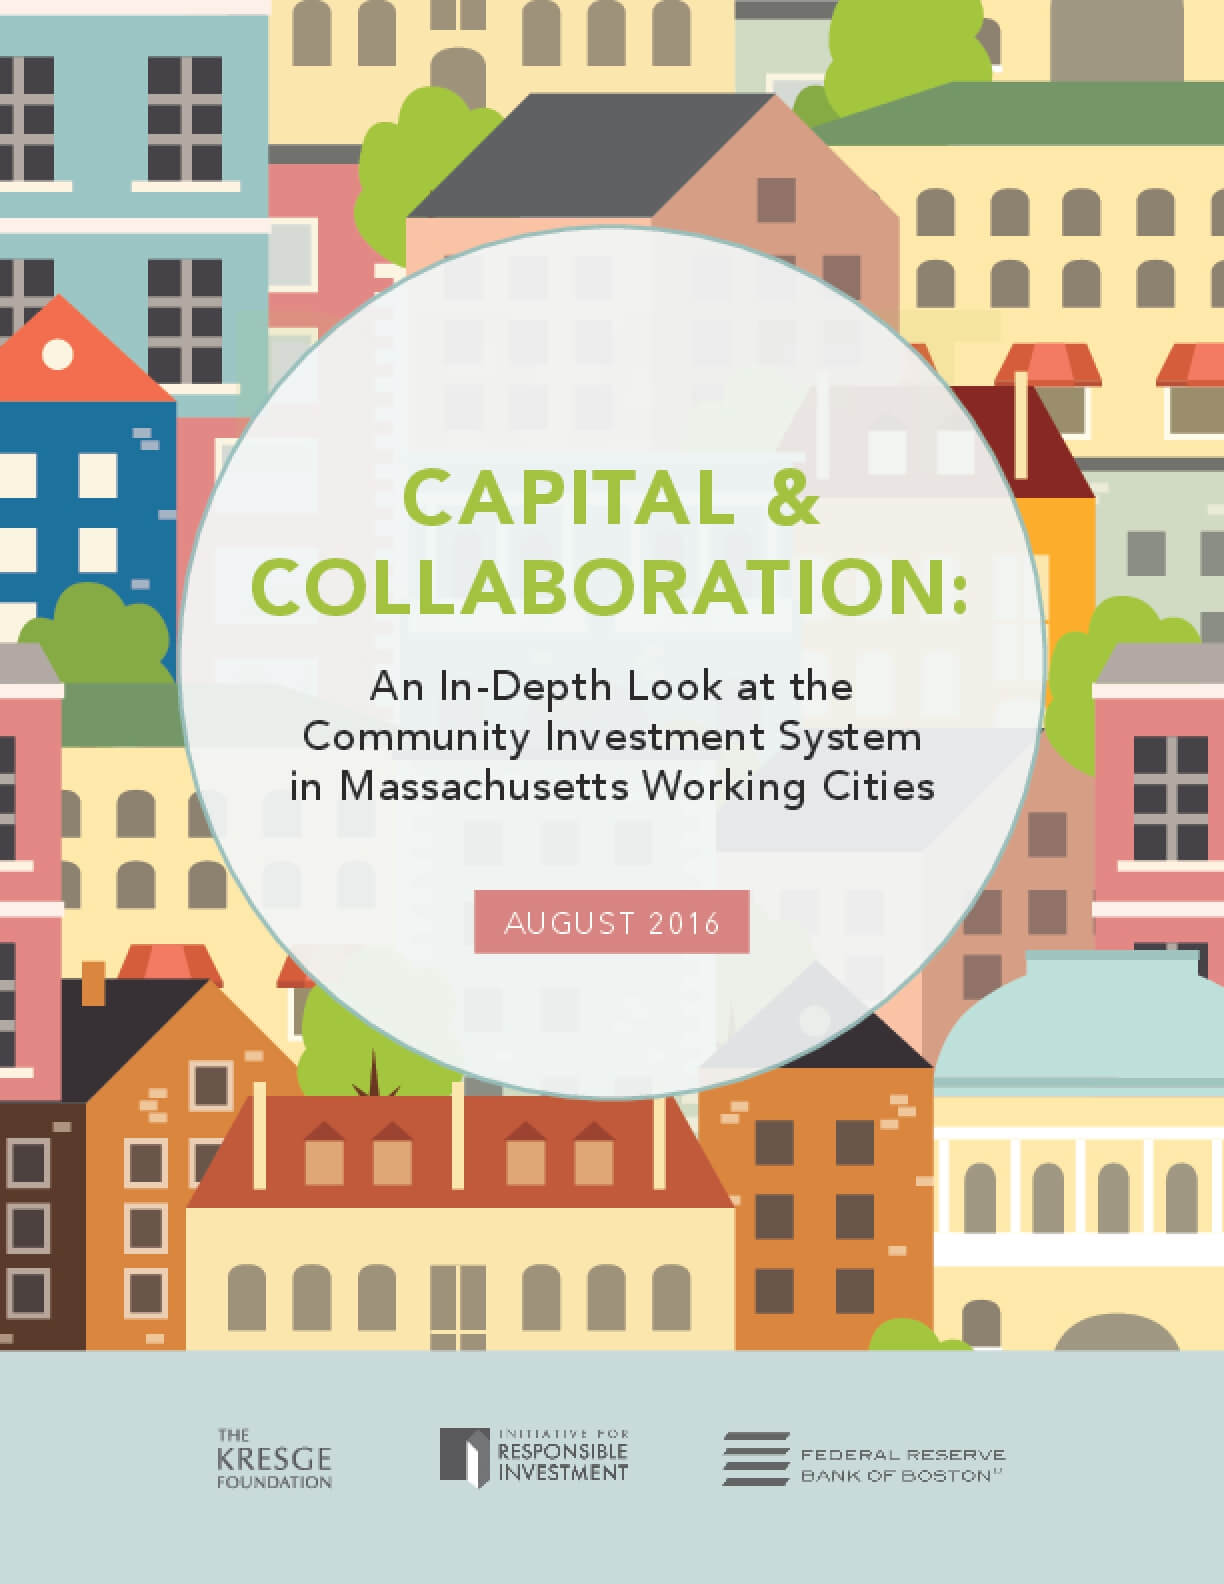 Capital Collaboration: An In-Depth Look at the Community Investment System in Massachusetts Working Cities